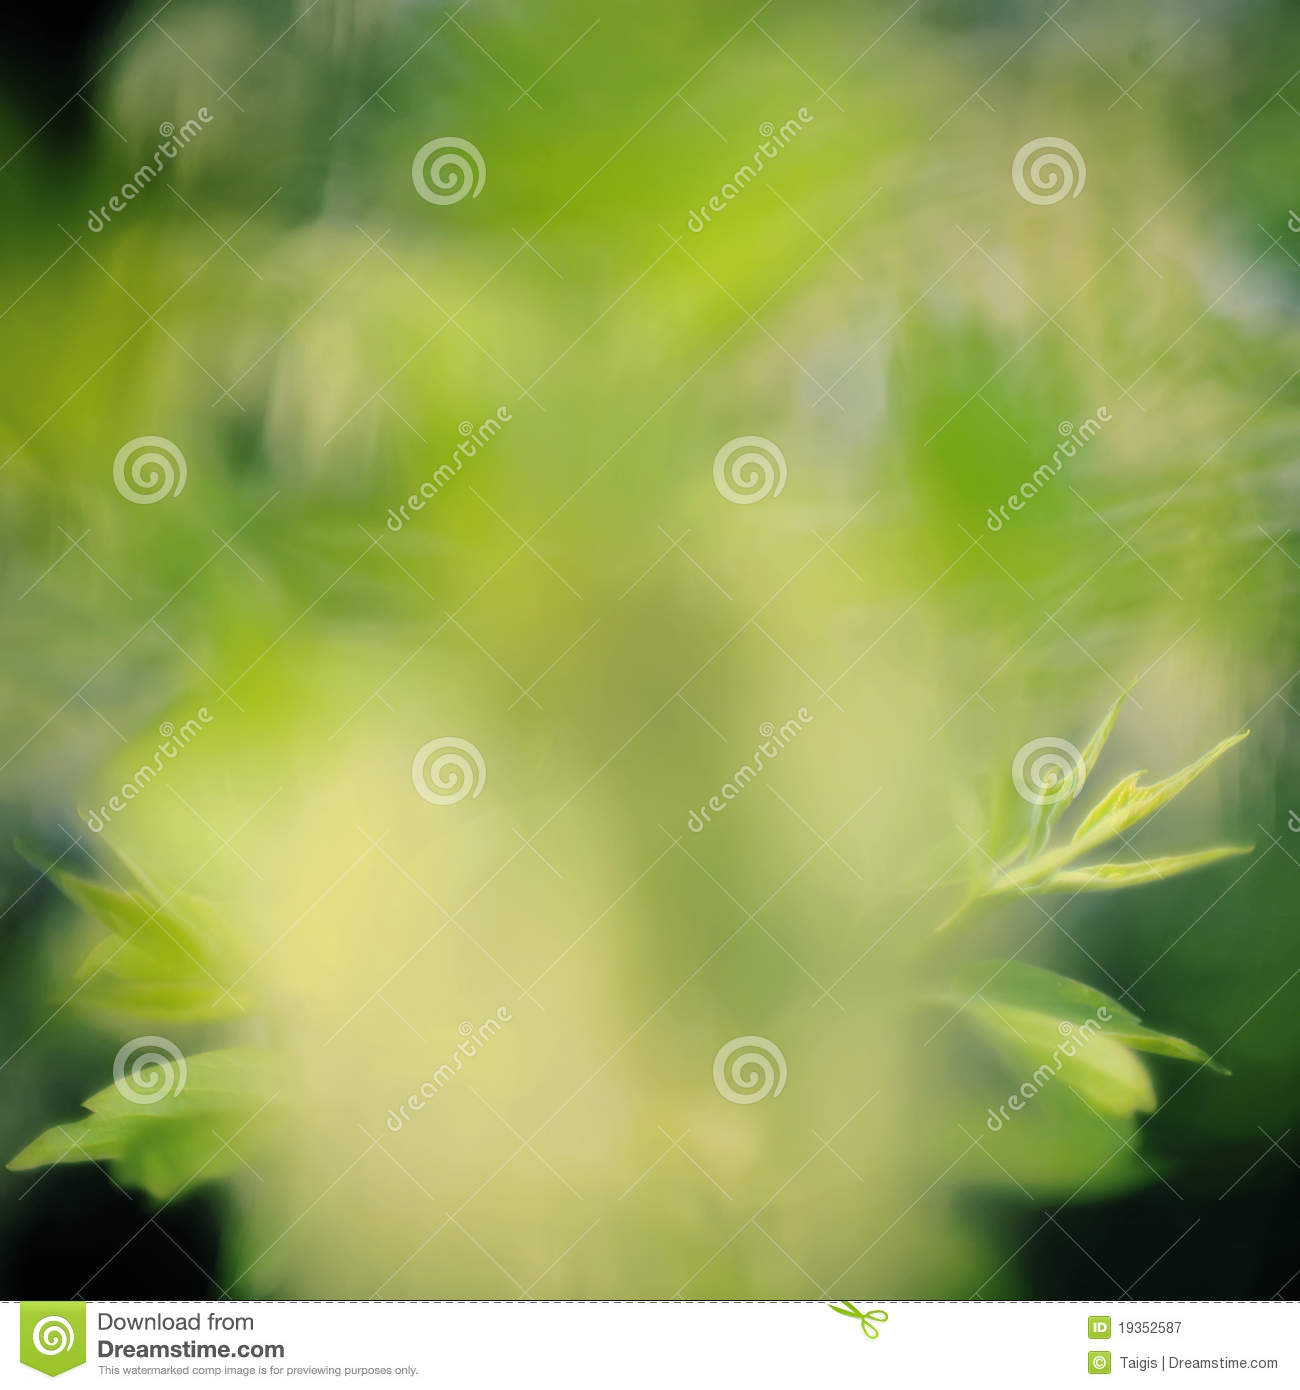 spring abstract background - photo #29